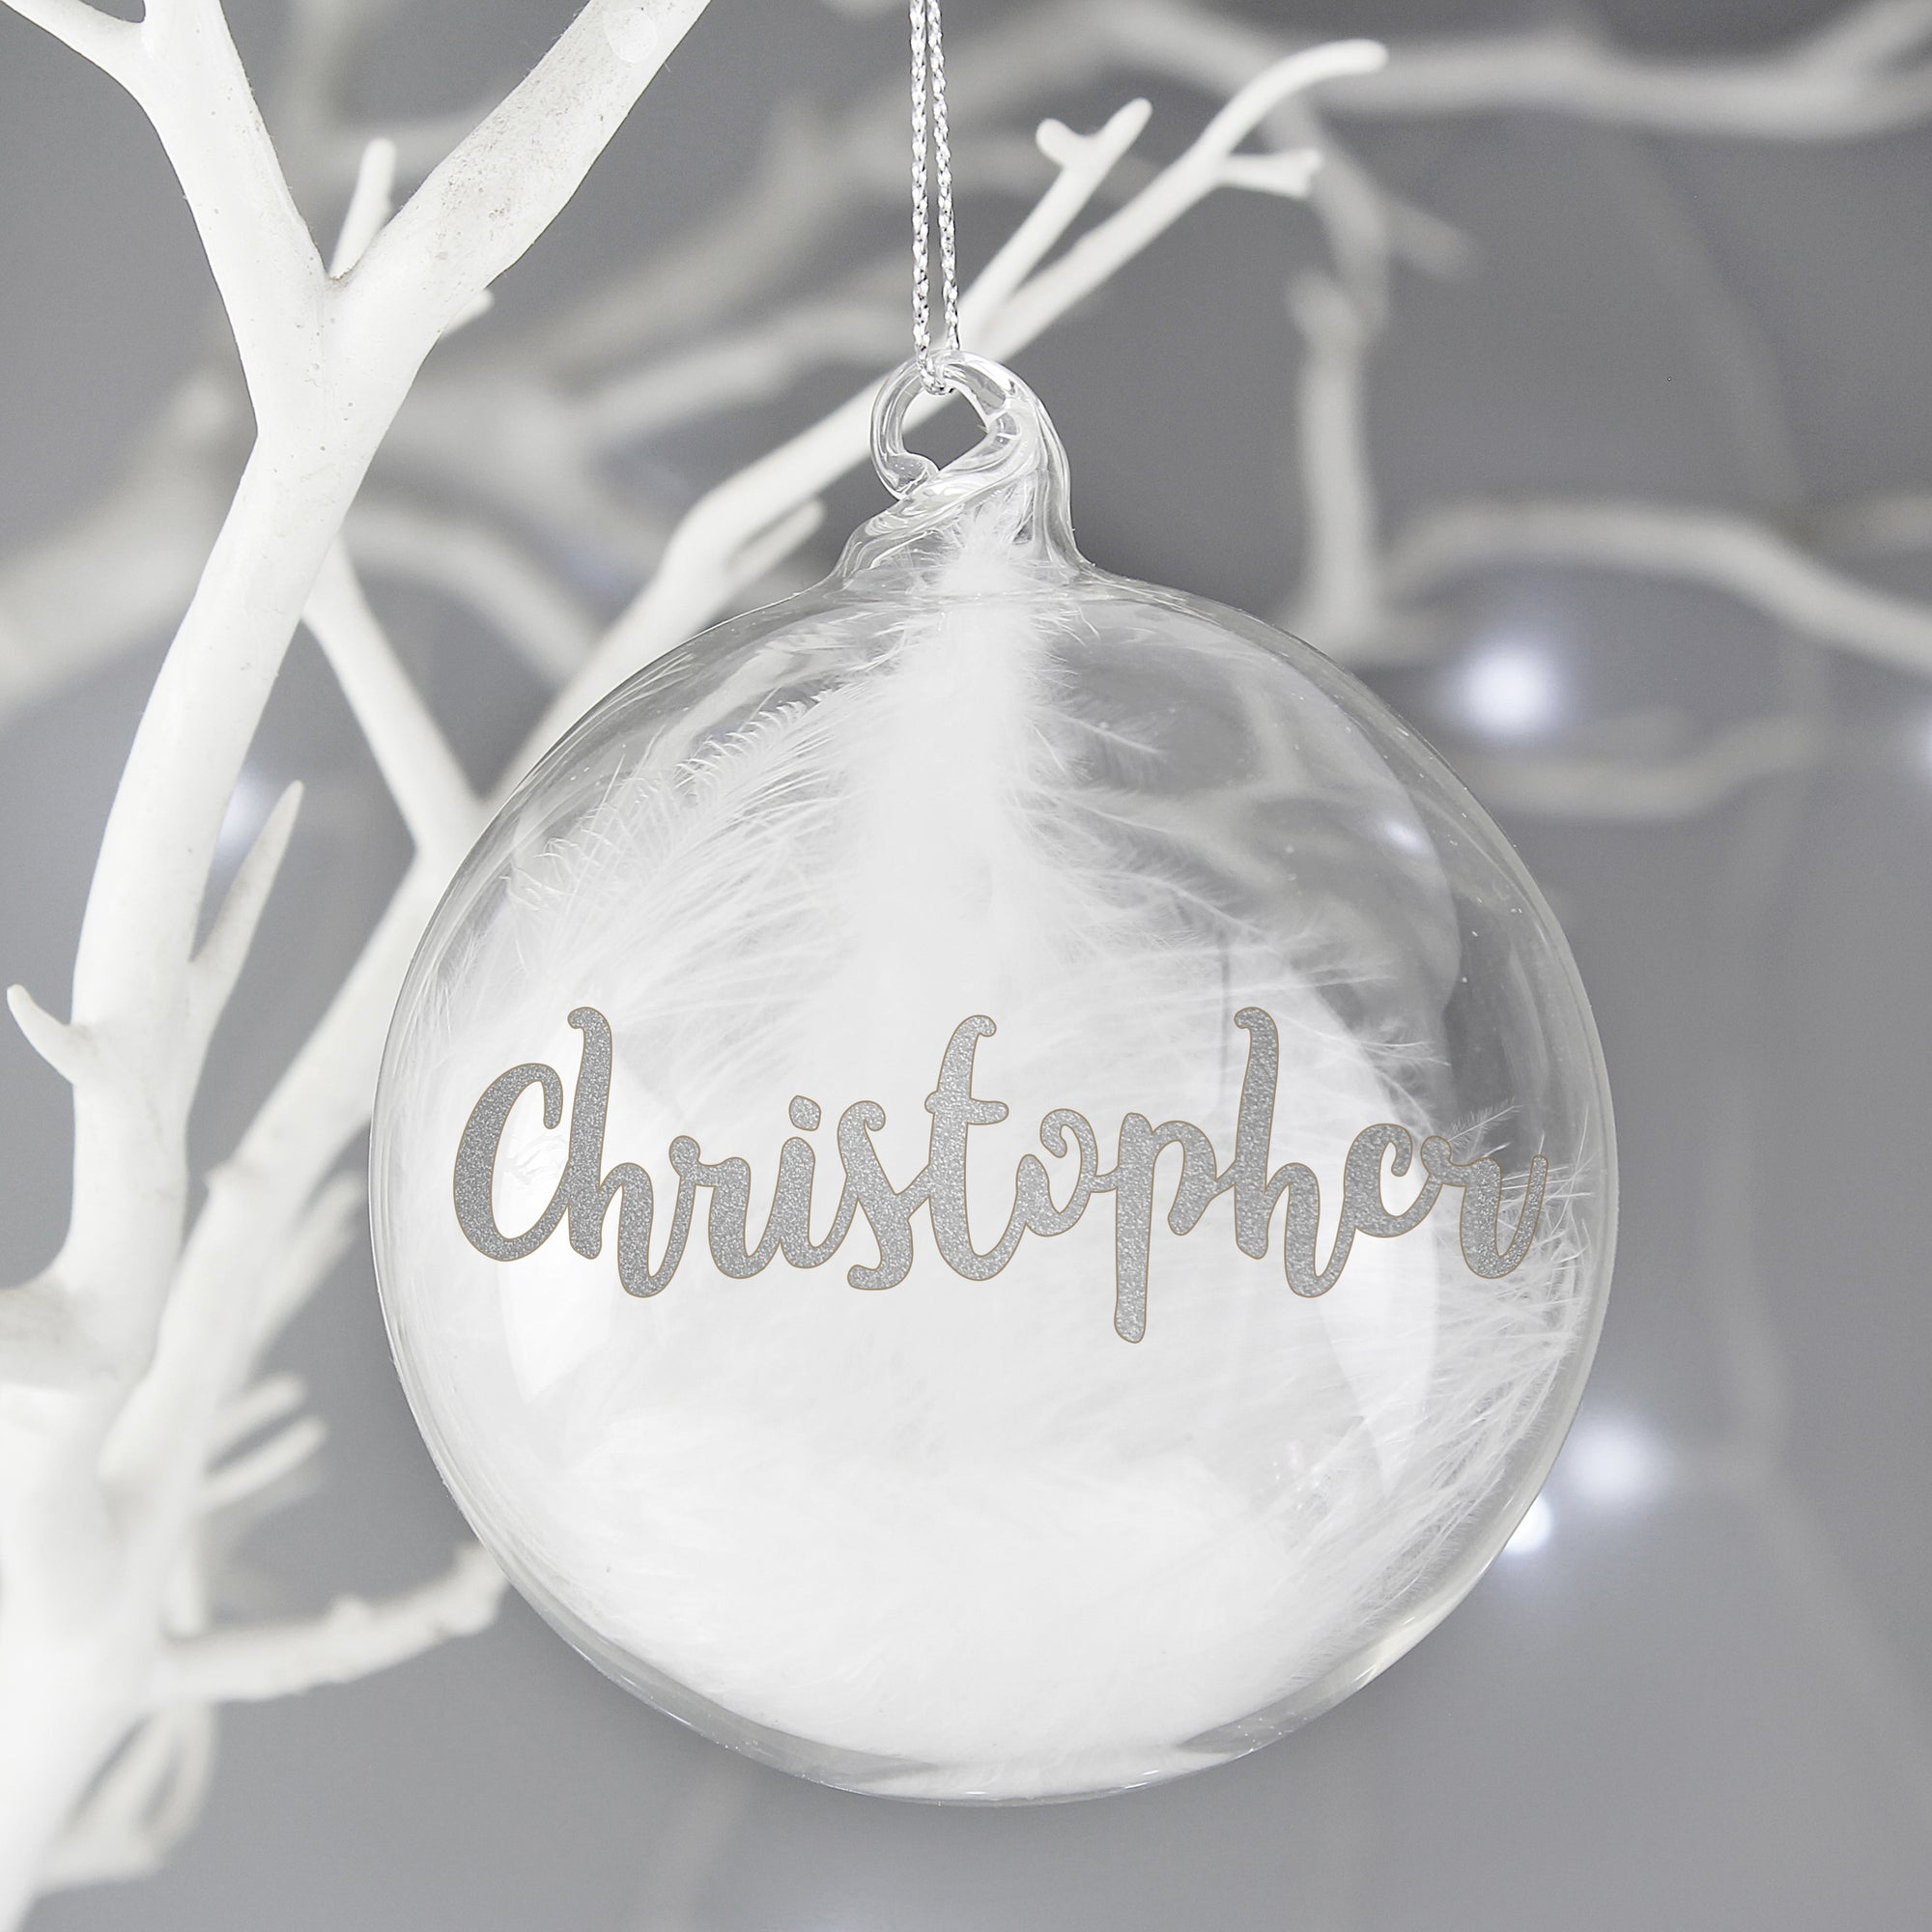 Personalised hand-made clear glass Christmas bauble that has a white feather inside it. The front of the bauble can be personalised with a name of your choice of up to 11 characters that will be printed in a silver glittery modern cursive font. The bauble comes with a string ready to hang and measures approximately 8 cm wide.